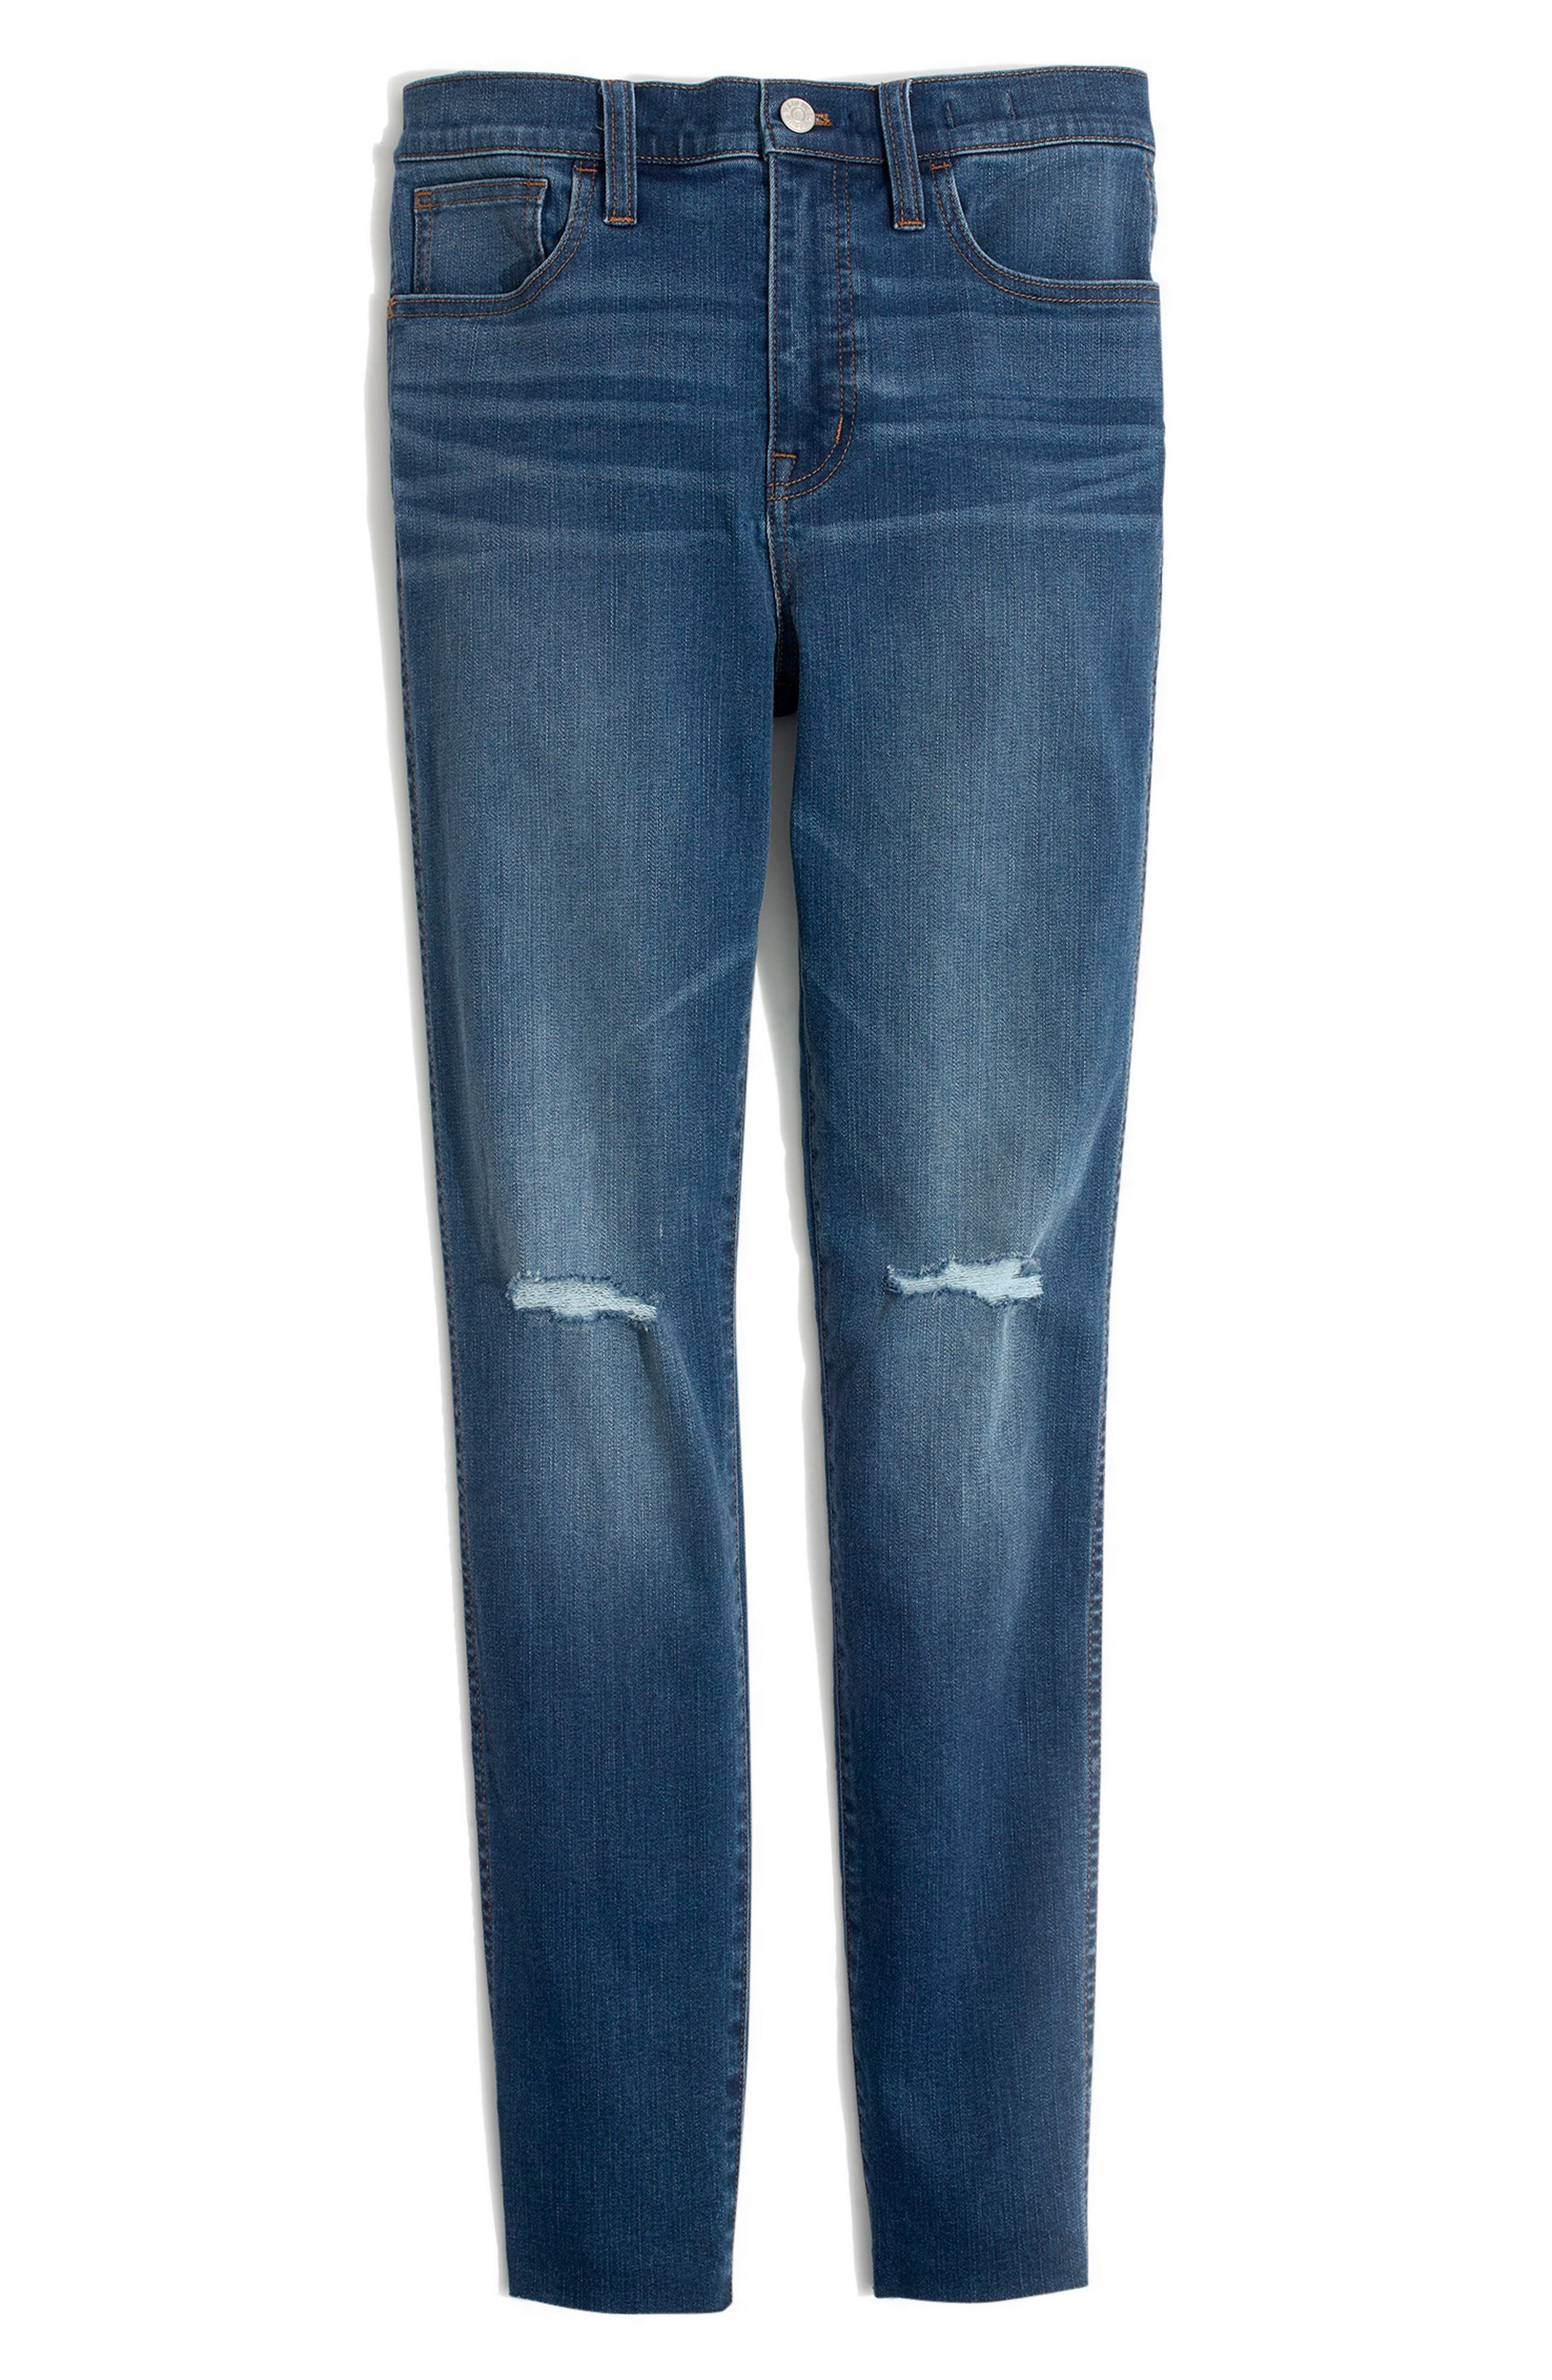 MADEWELL, Roadtripper Ripped High Waist Ankle Skinny Jeans, Alternate thumbnail 4, color, THE ROAD TRIPPER W/ SLIT KNEES